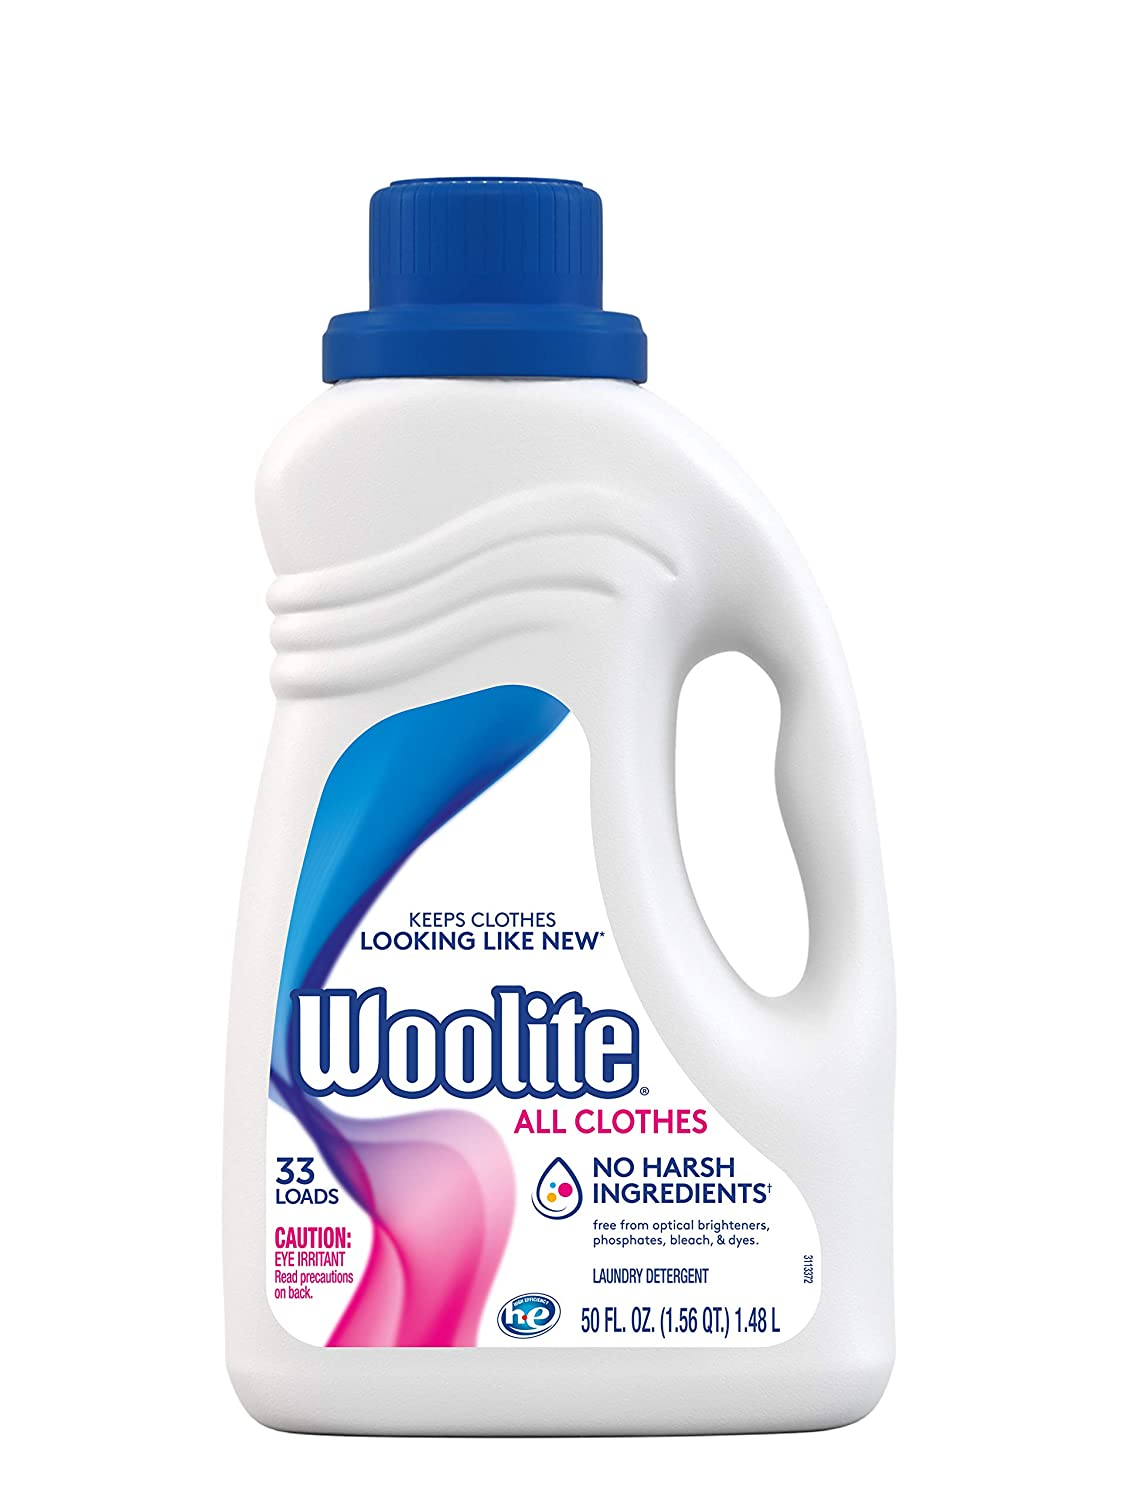 Woolite Clean & Care Liquid Laundry Detergent, 33 Loads, 50oz, Regular & HE Washers, Gentle Cycle, sparkling falls scent,packaging may vary